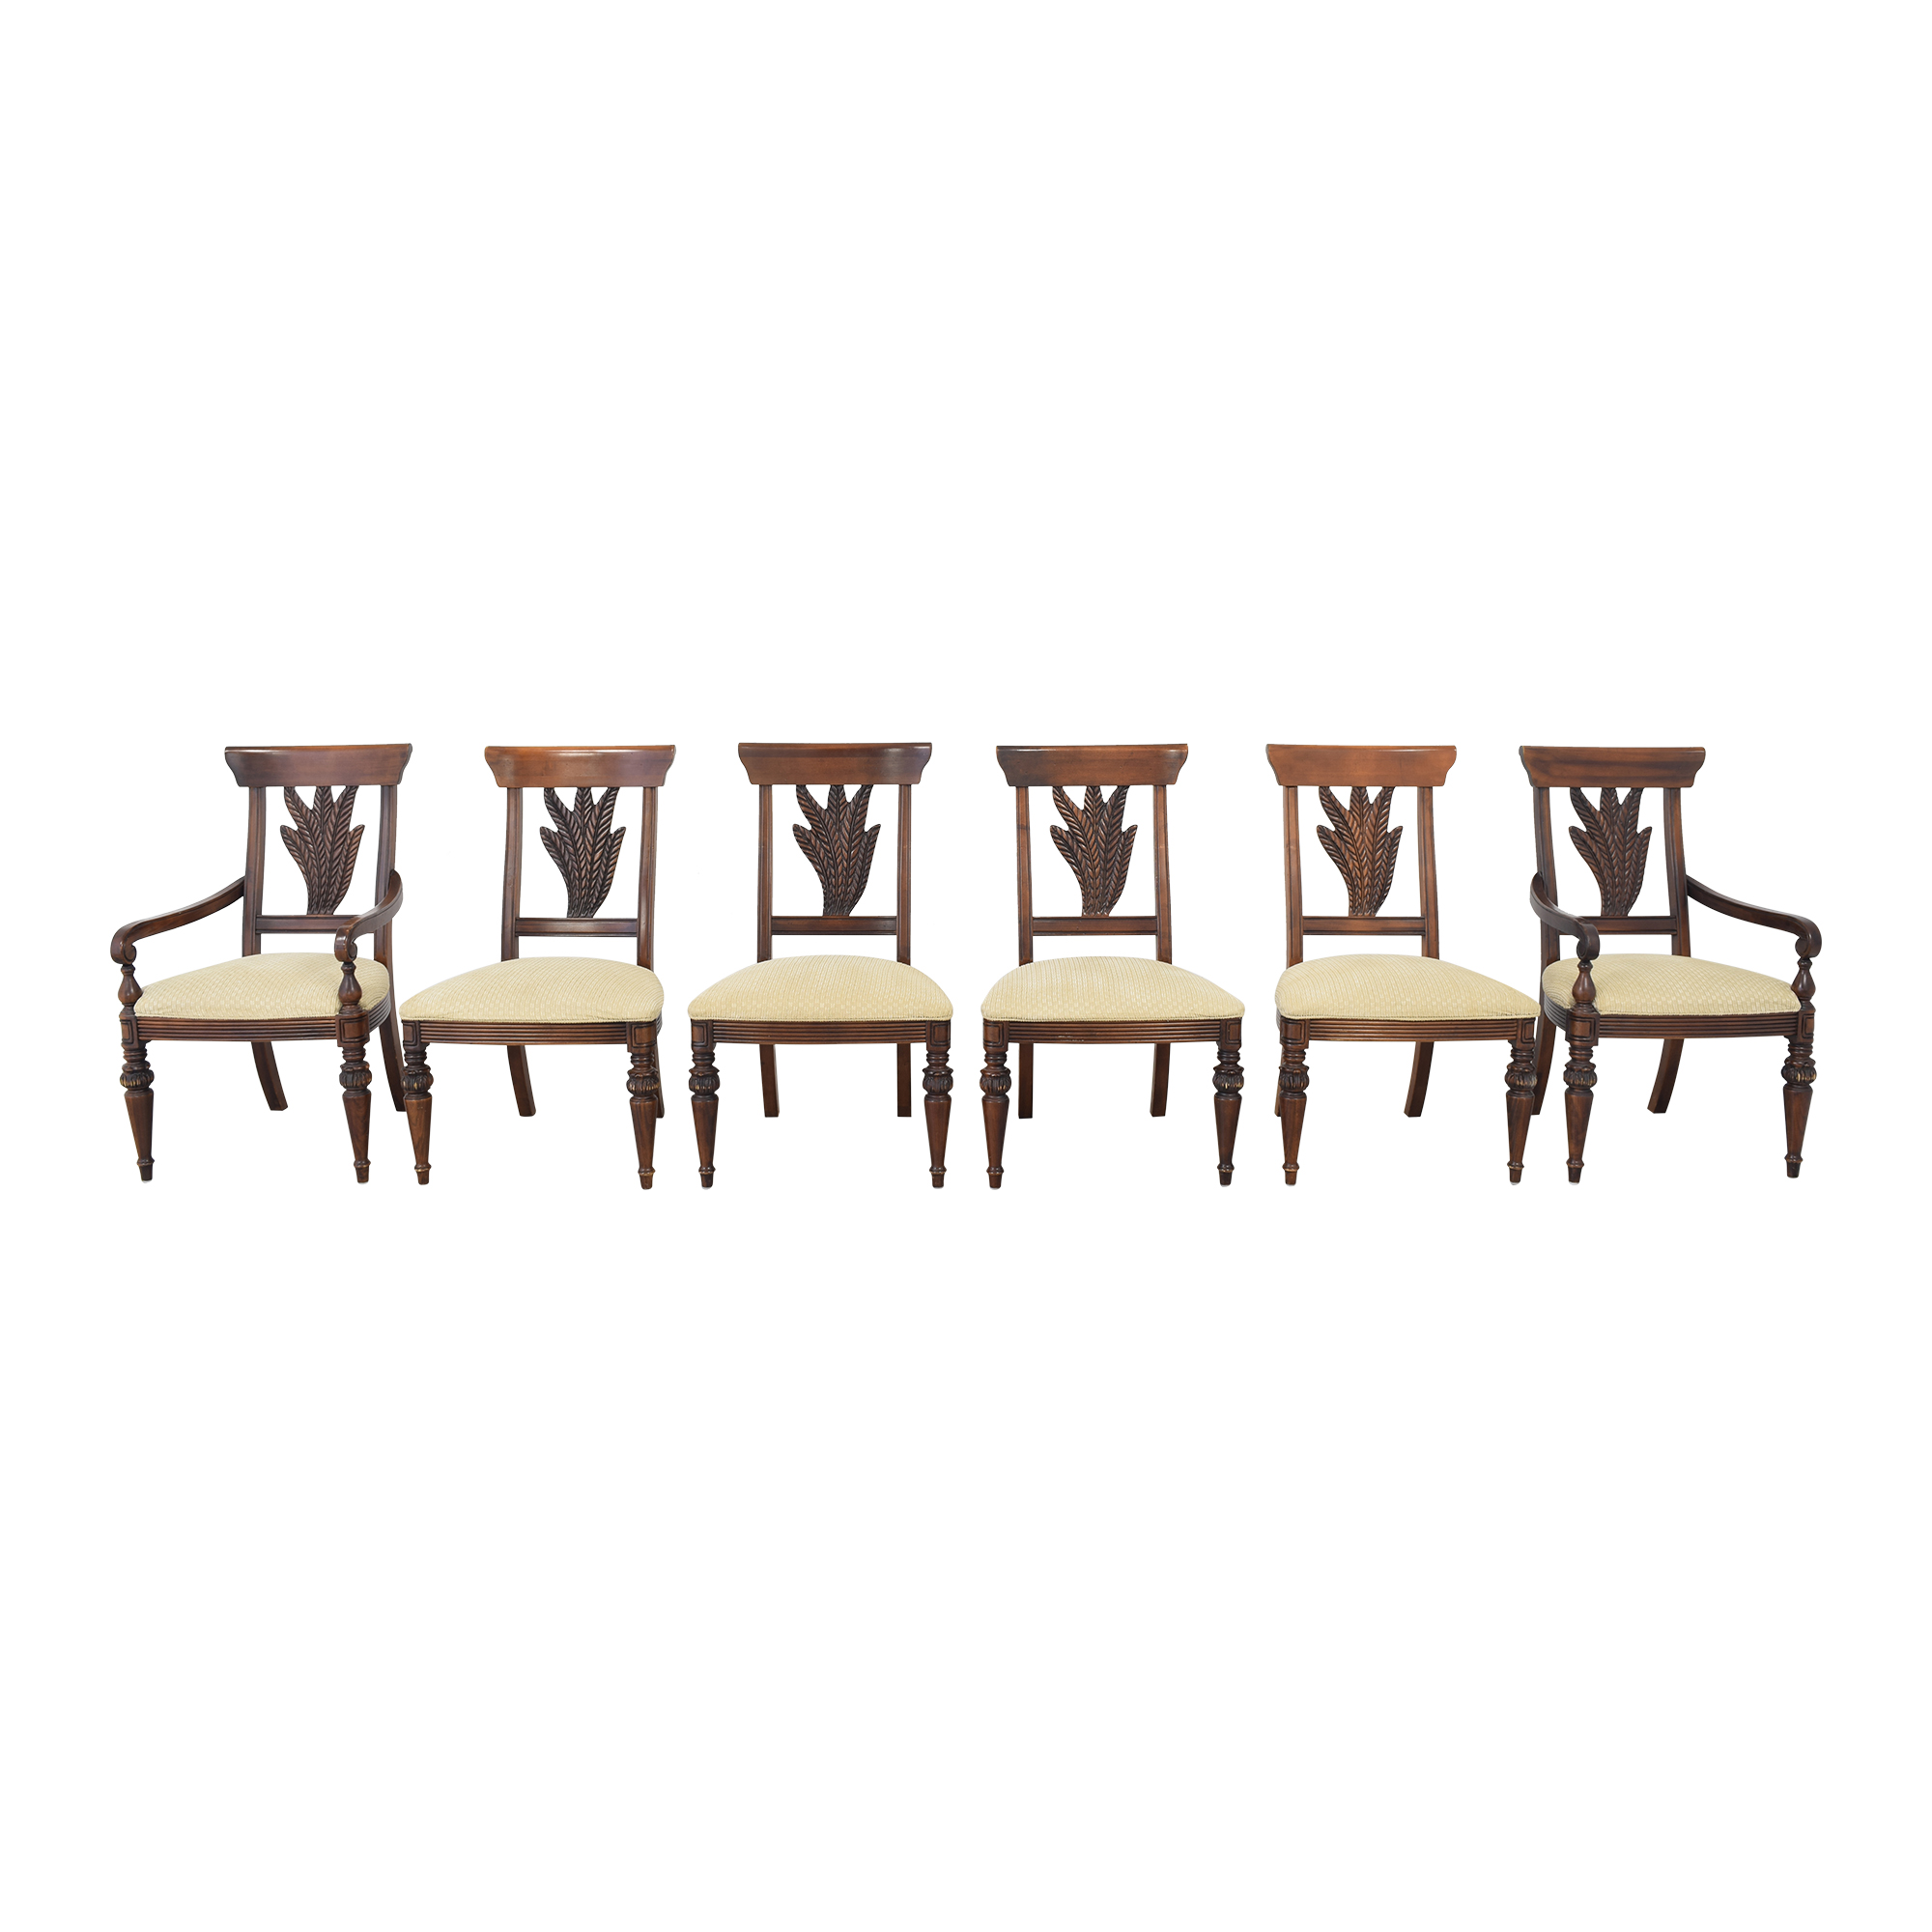 Thomasville Ernest Hemingway Collection Dining Chairs / Chairs